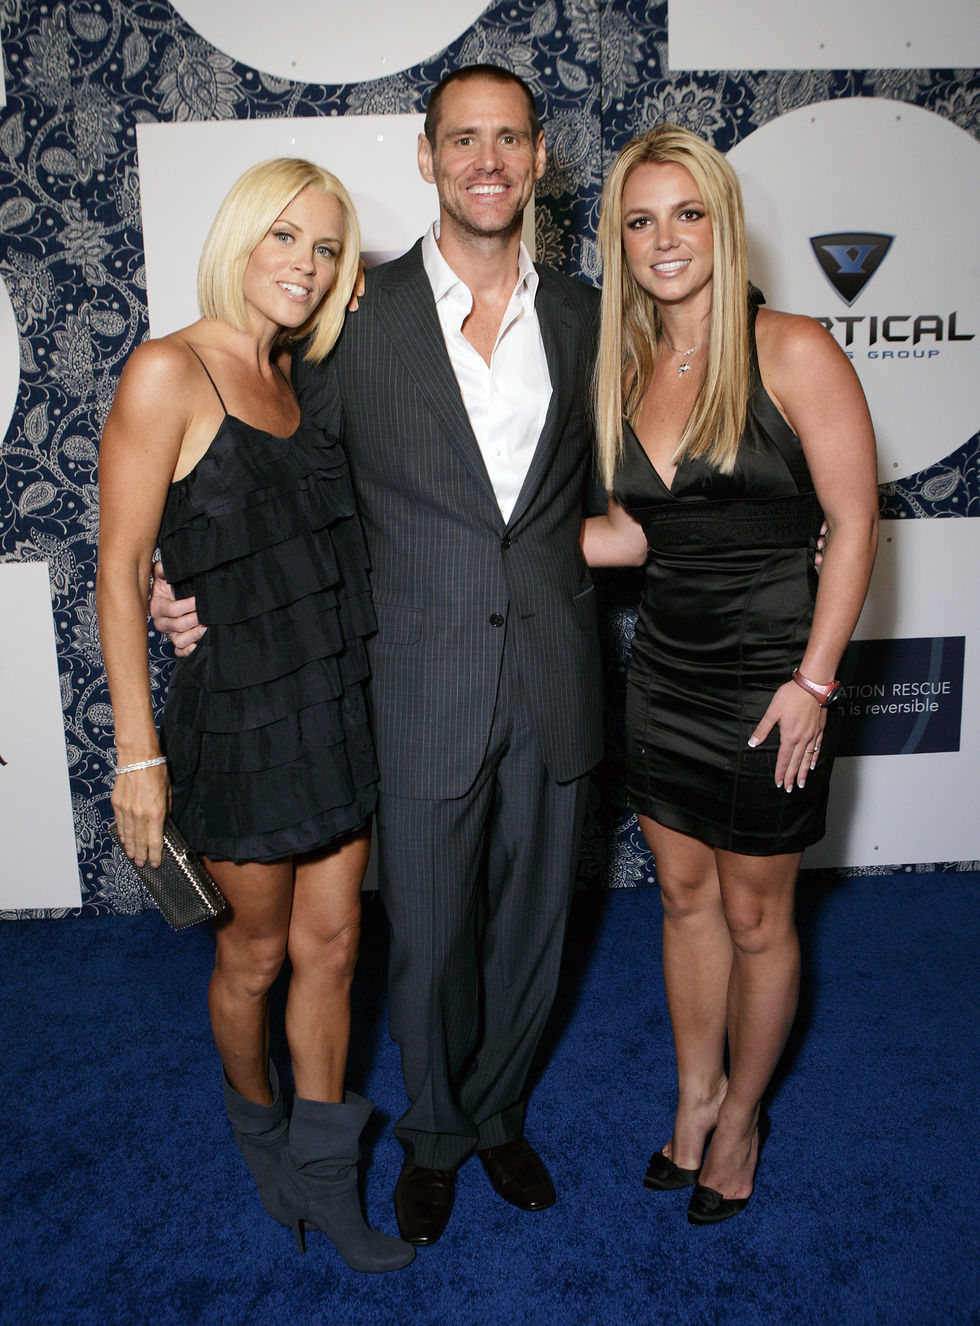 britney-spears-generation-rescues-event-in-los-angeles-01